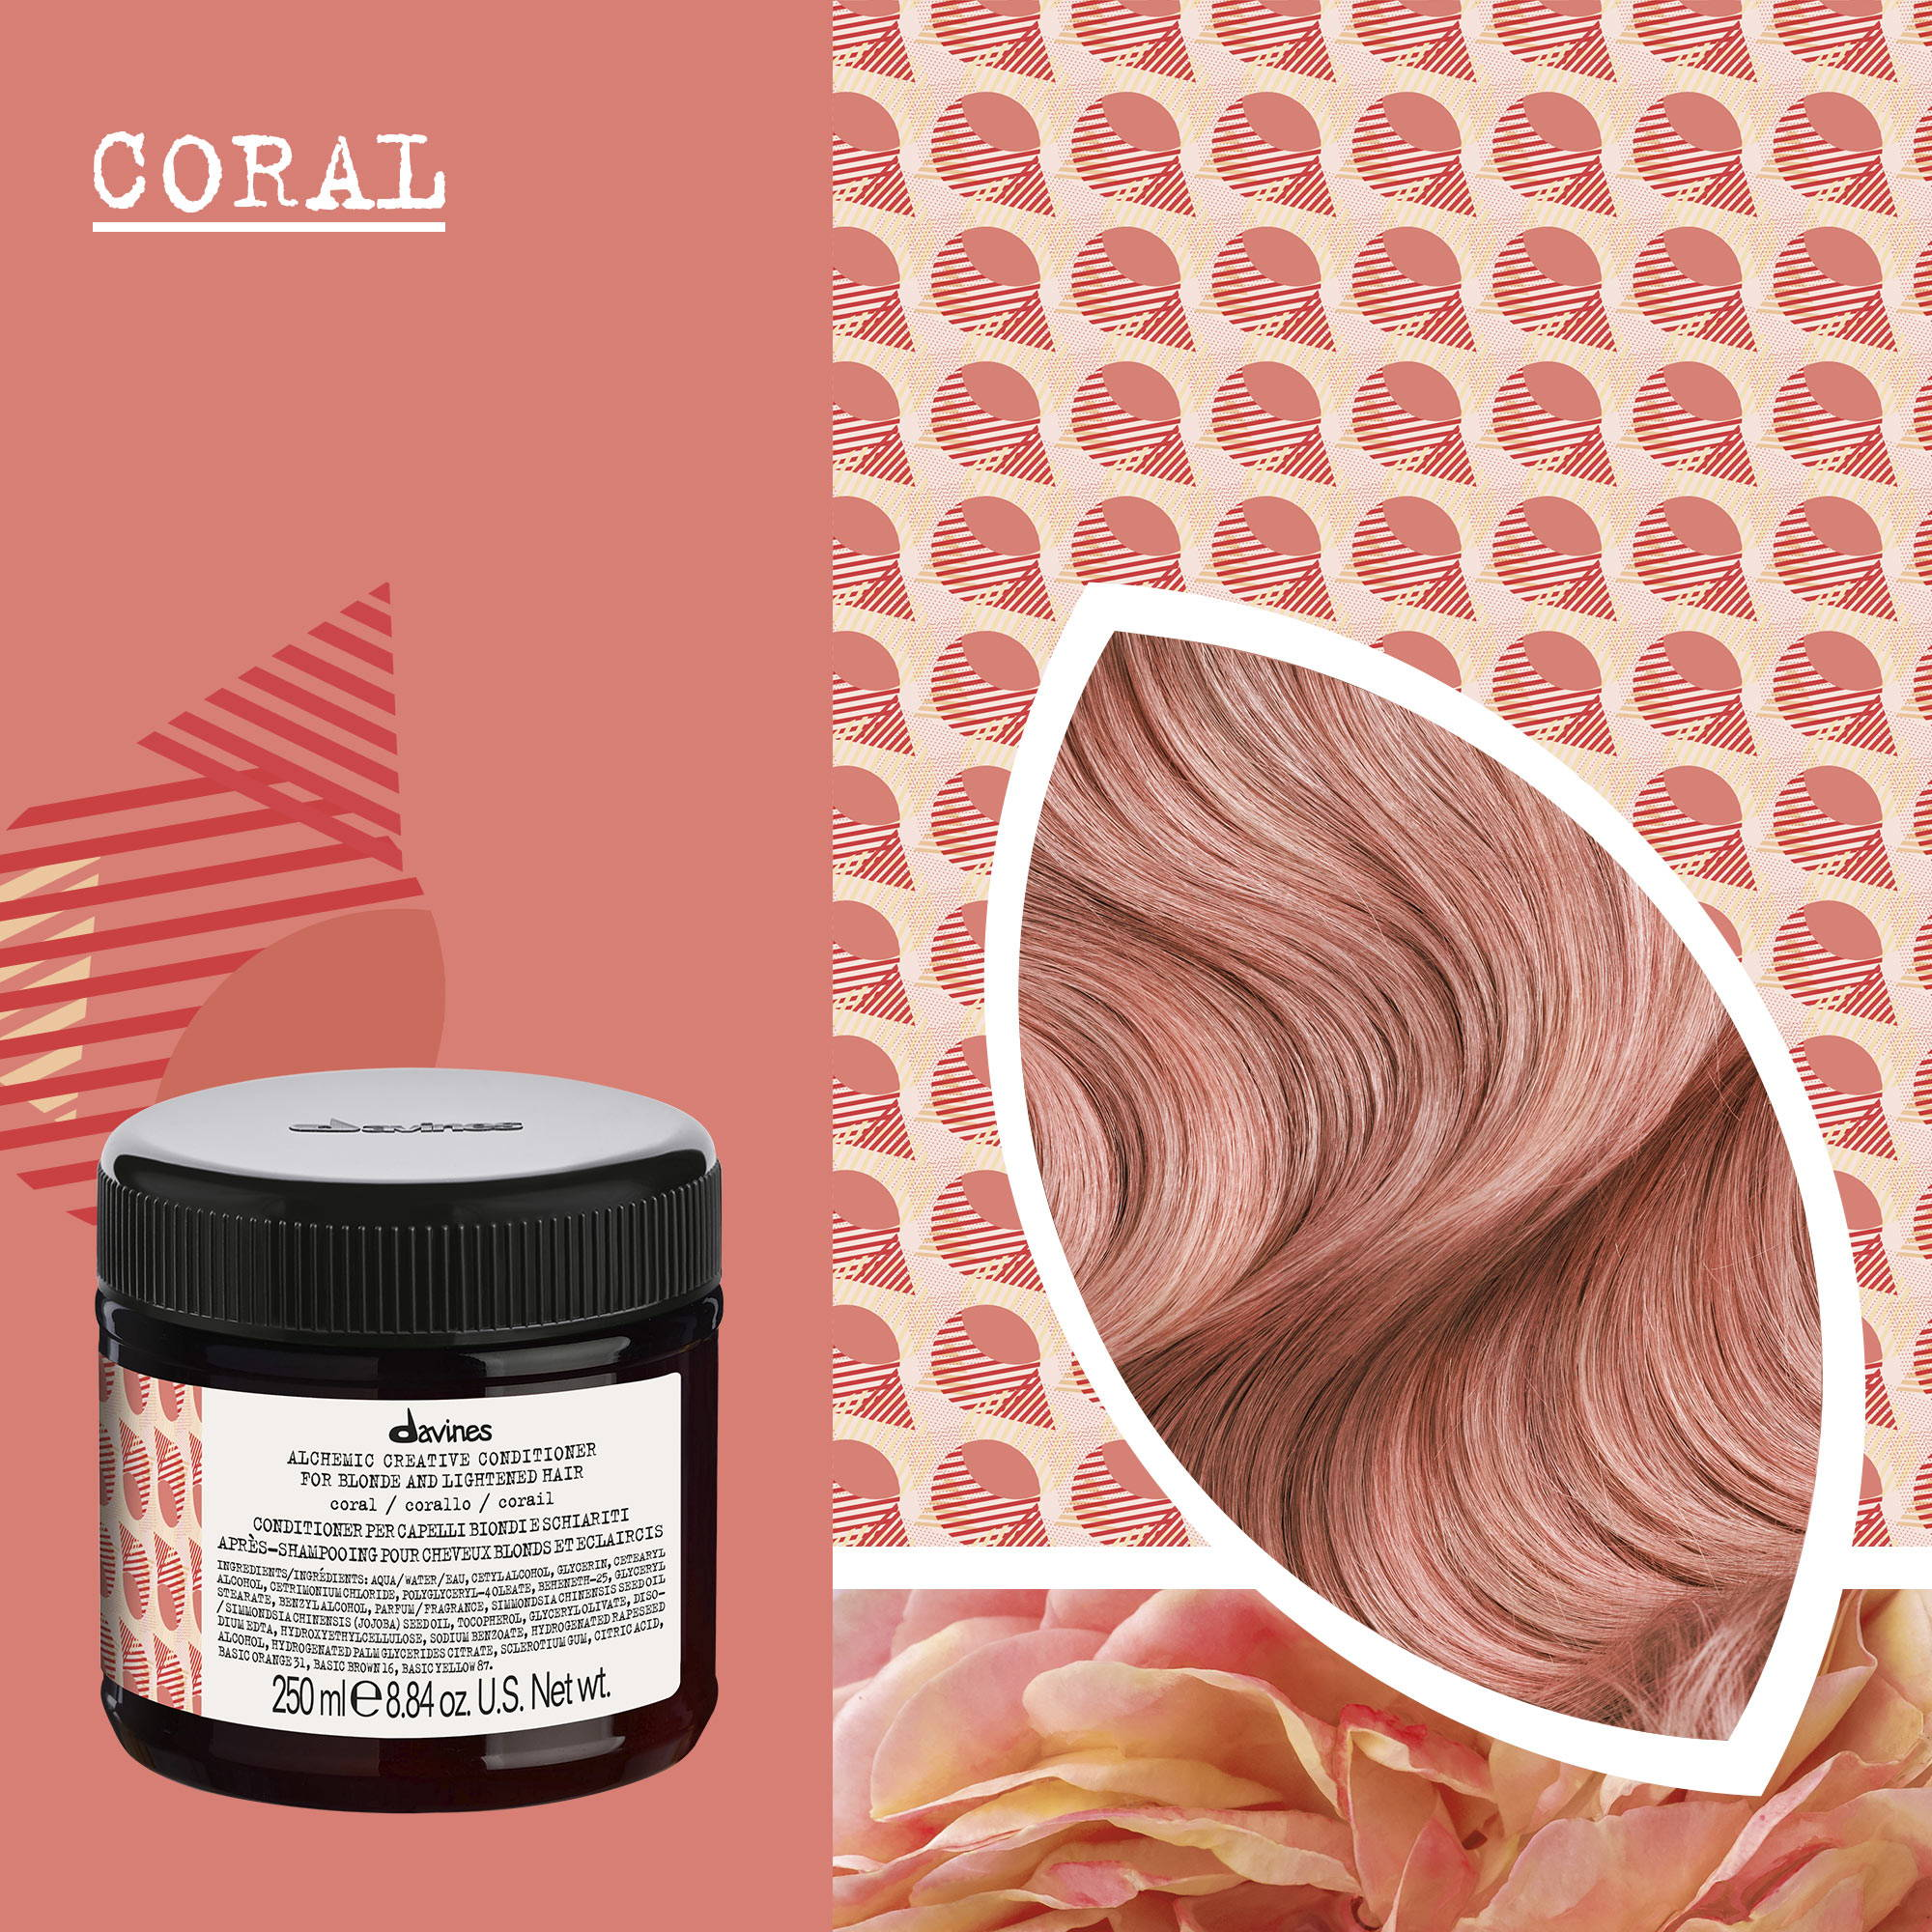 Coral Alchemic Creative Conditioner